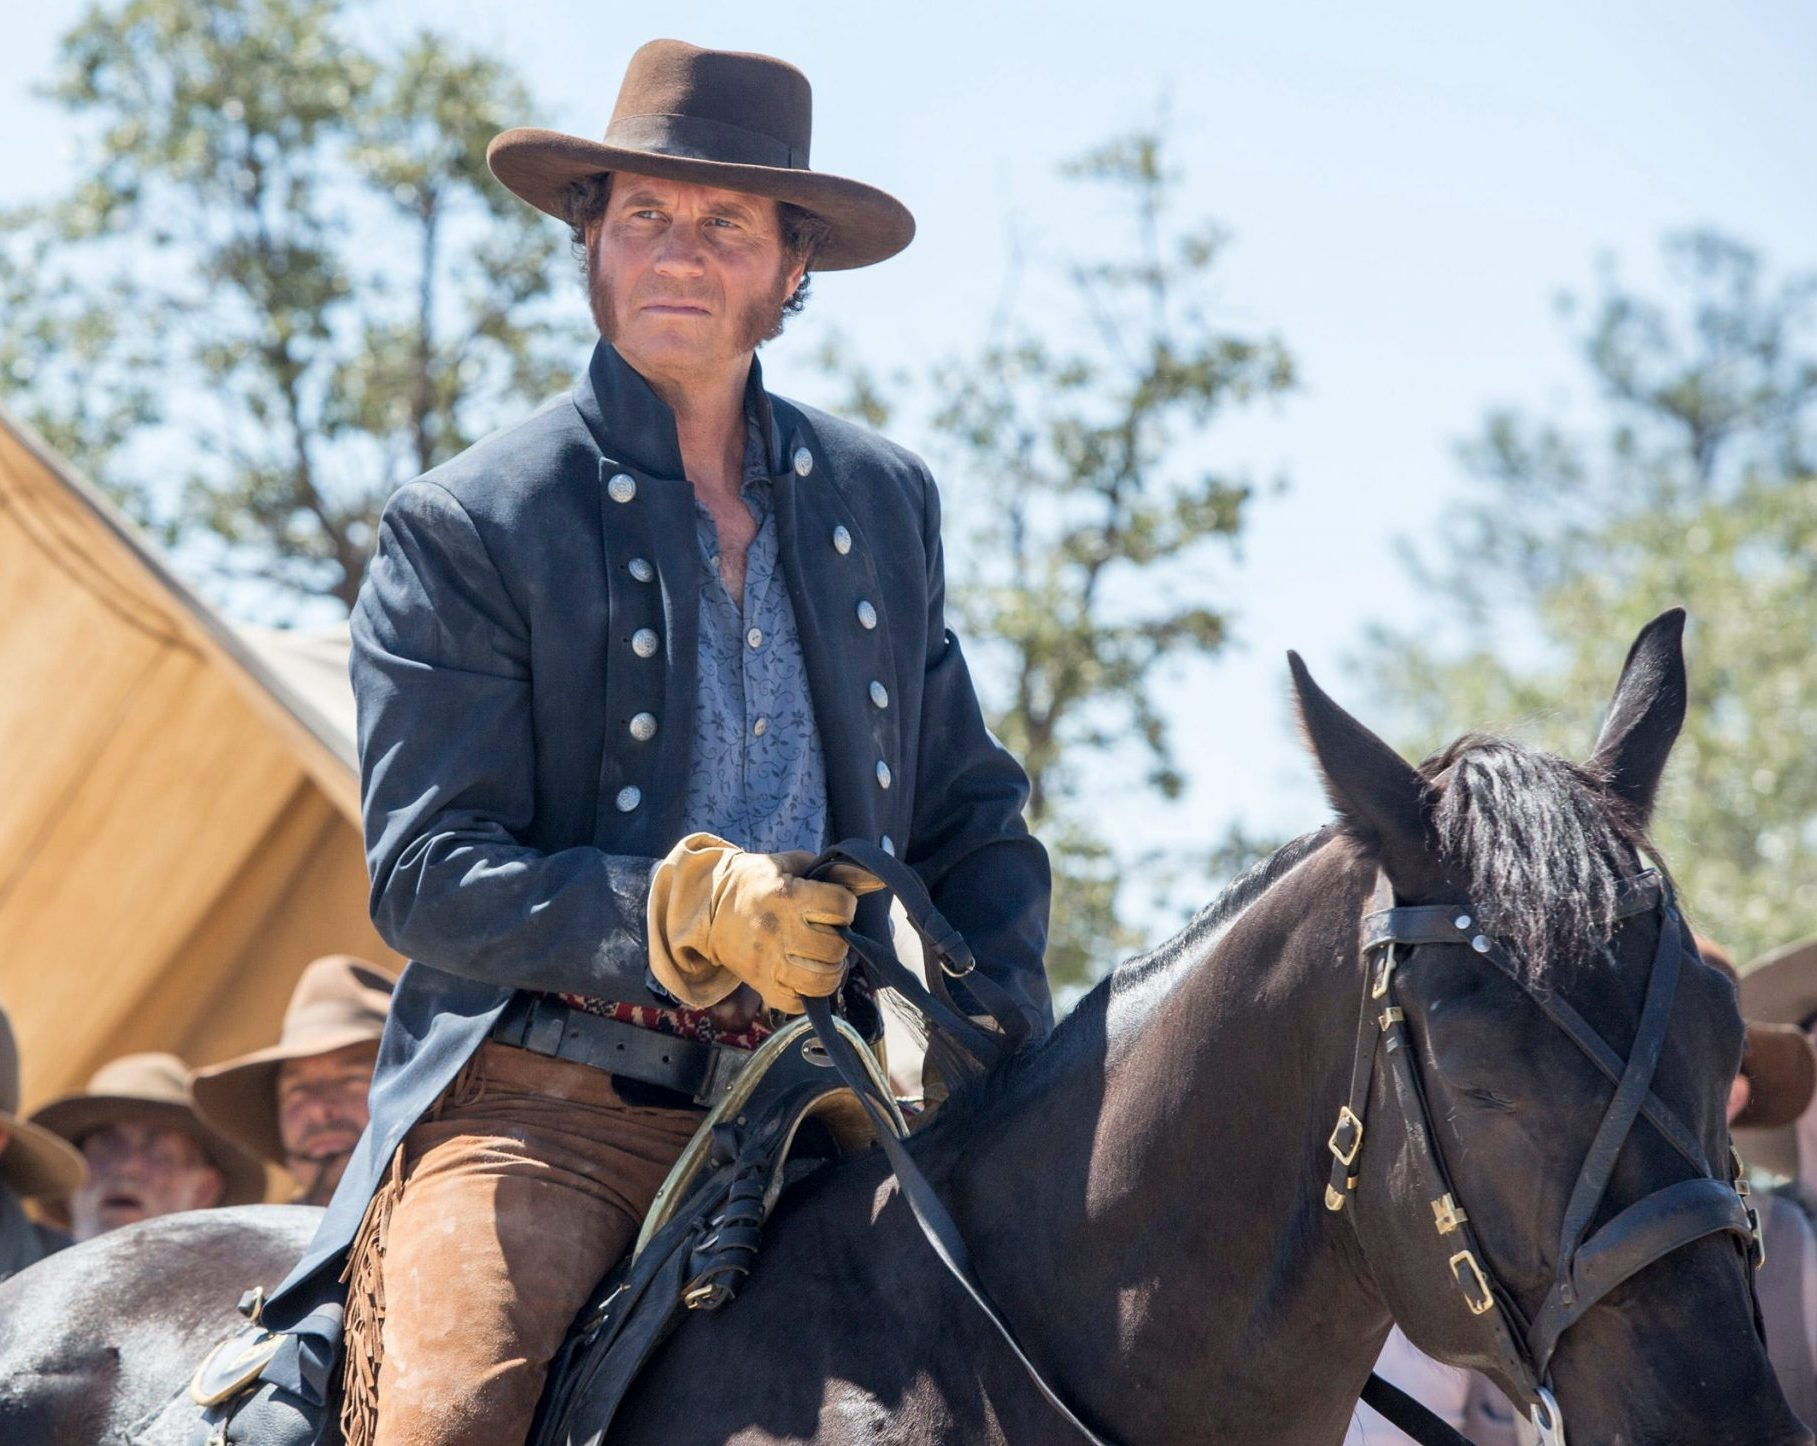 635678118557350627 TexasRising BillPaxton01 scaled e1622129806452 20 Things You Never Knew About Bill Paxton